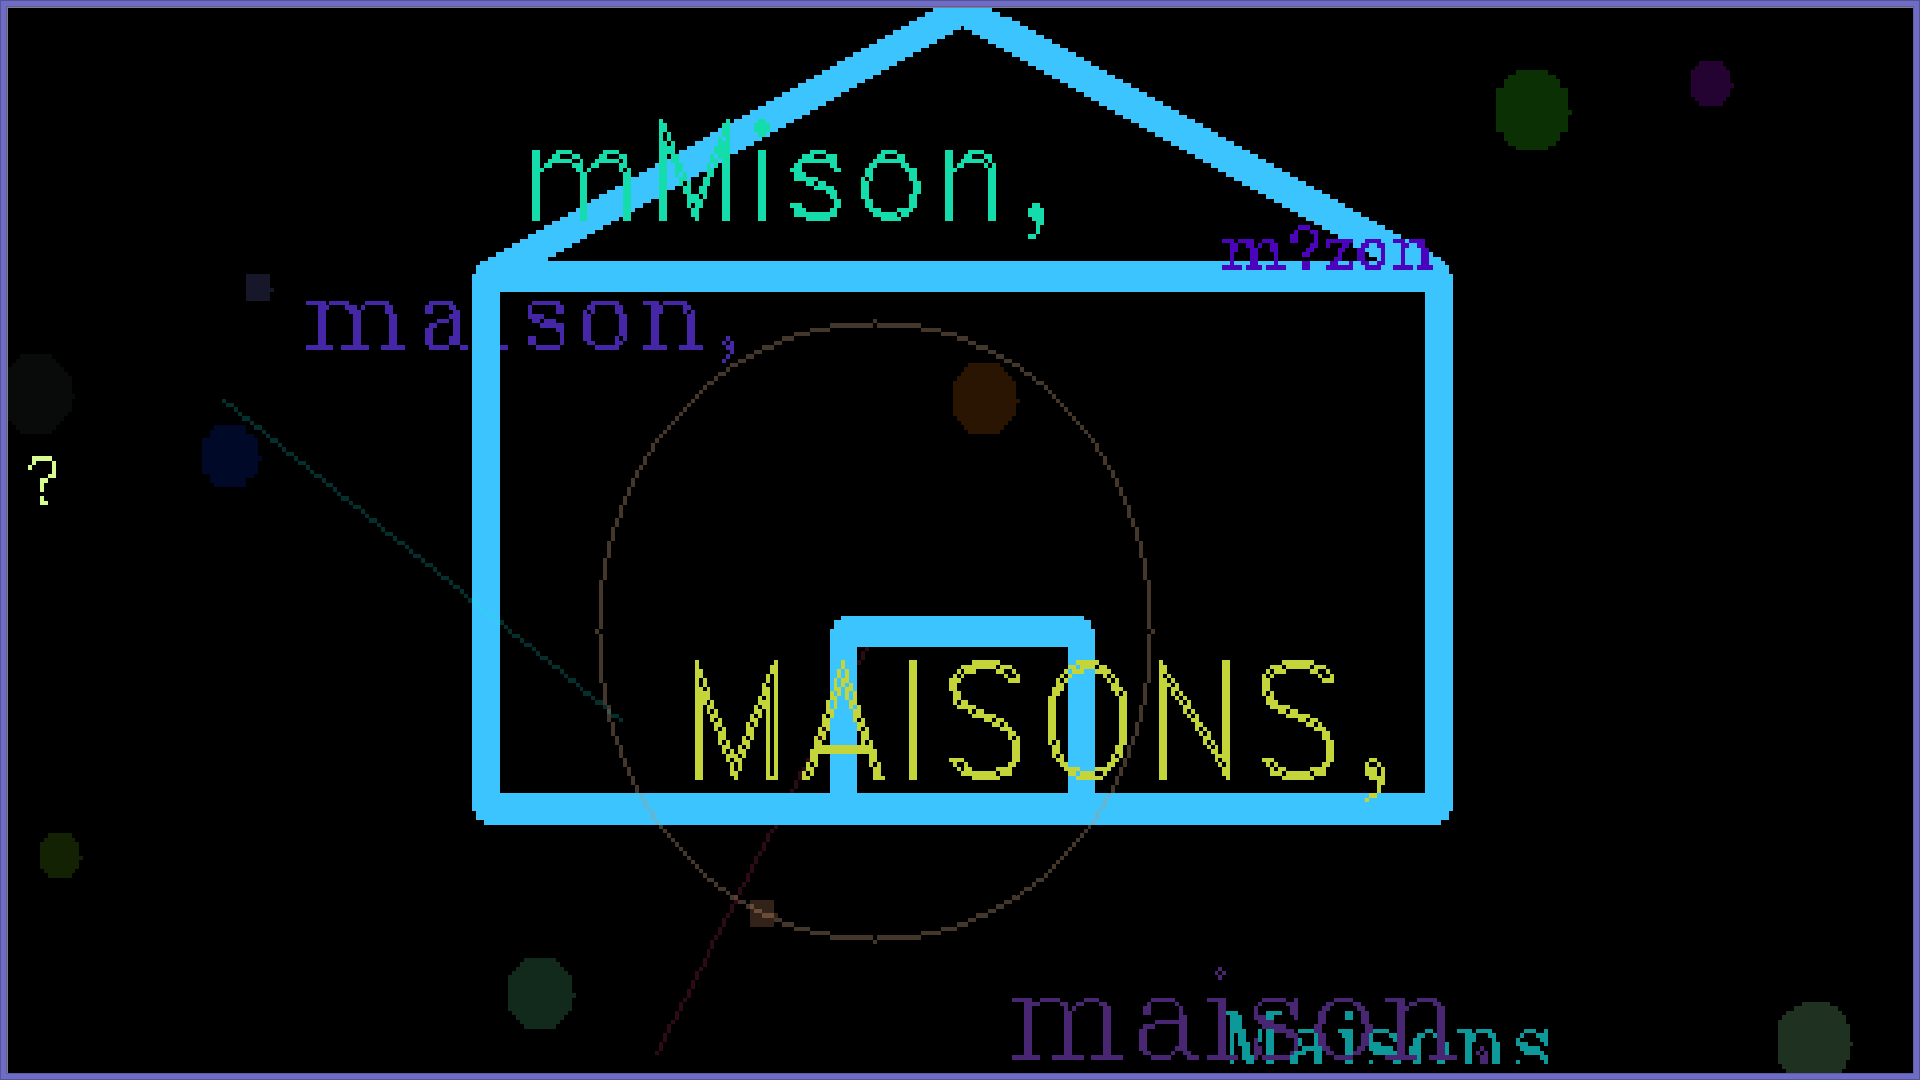 A house is drawn because the machine saw the word 'maison' (house in French).